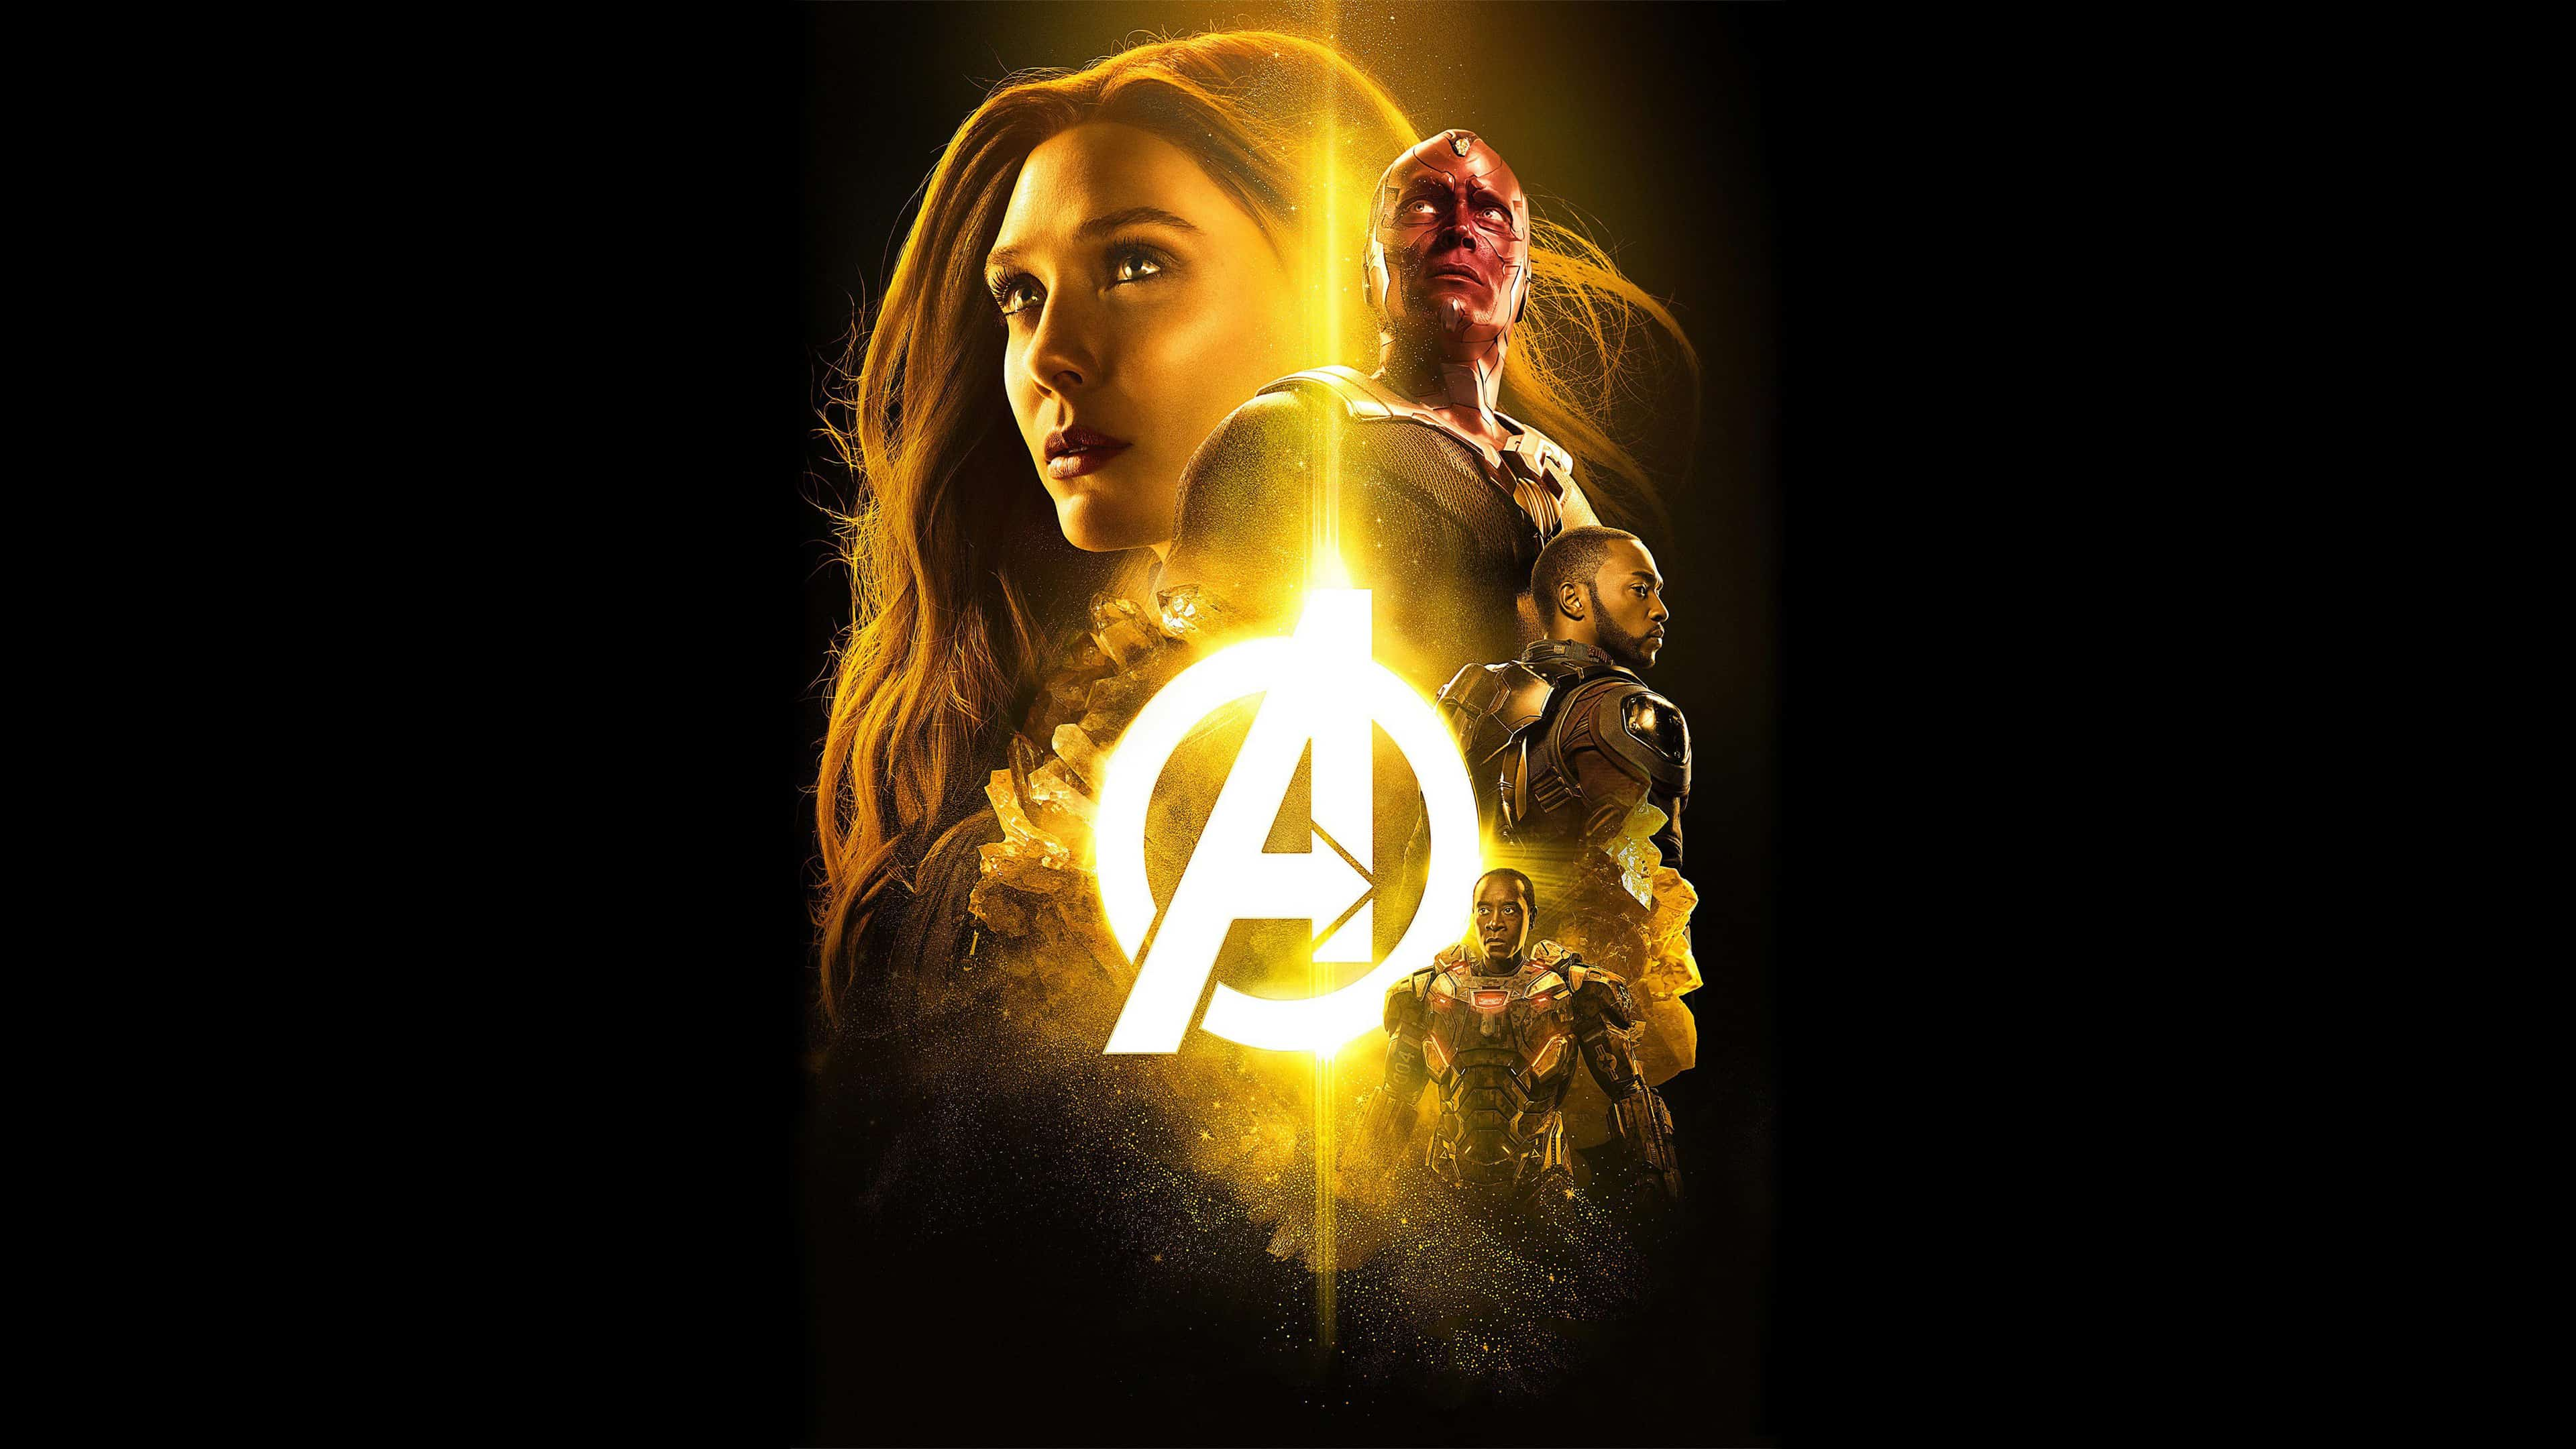 Avengers Infinity War The Mind Stone Poster Uhd 4k Wallpaper Pixelz